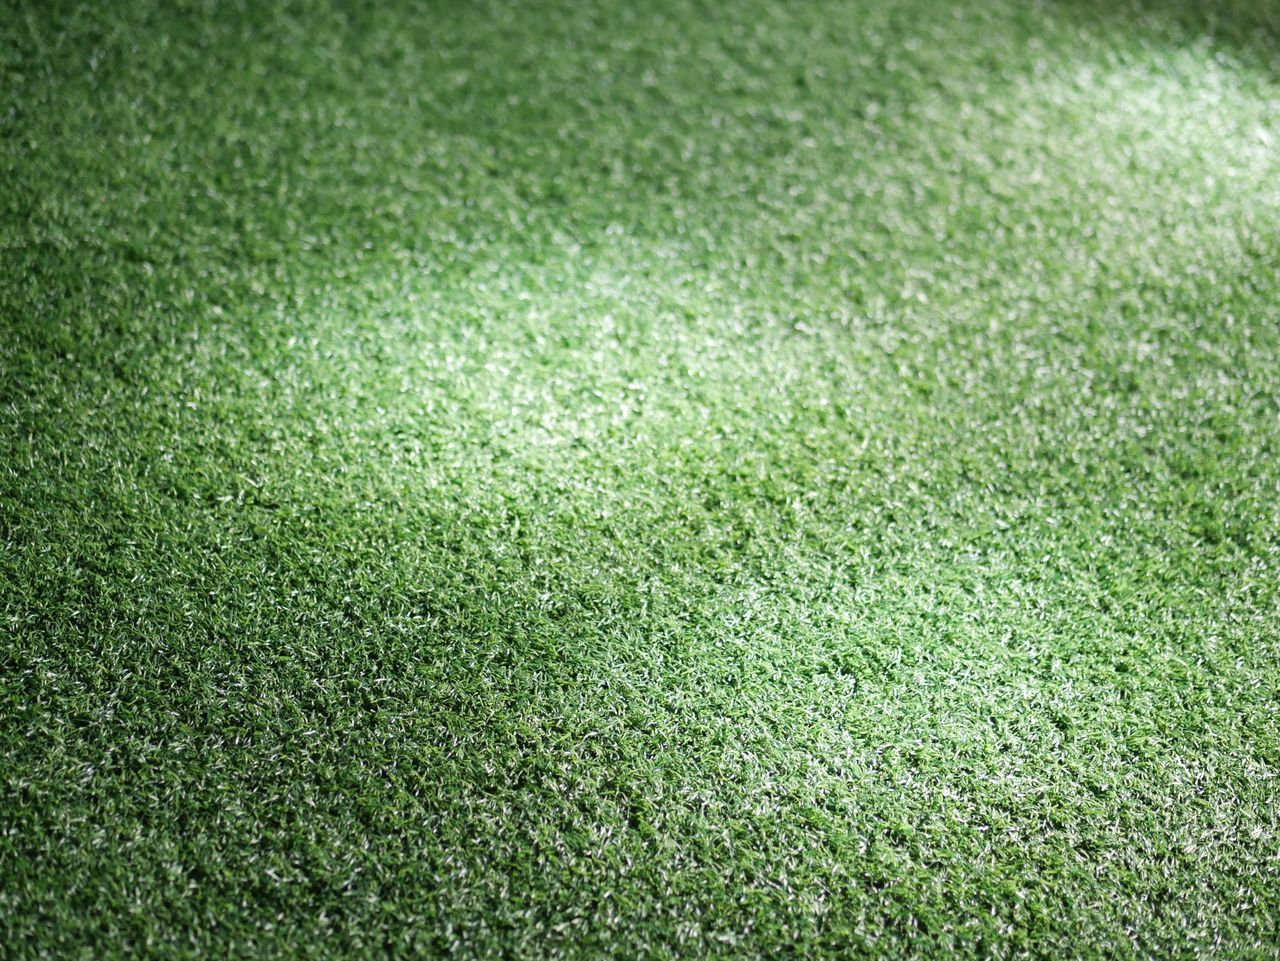 grass, green color, playing field, full frame, backgrounds, sport, lawn, turf, field, no people, soccer field, high angle view, grass area, day, nature, outdoors, american football field, golf course, green - golf course, competitive sport, close-up, stadium